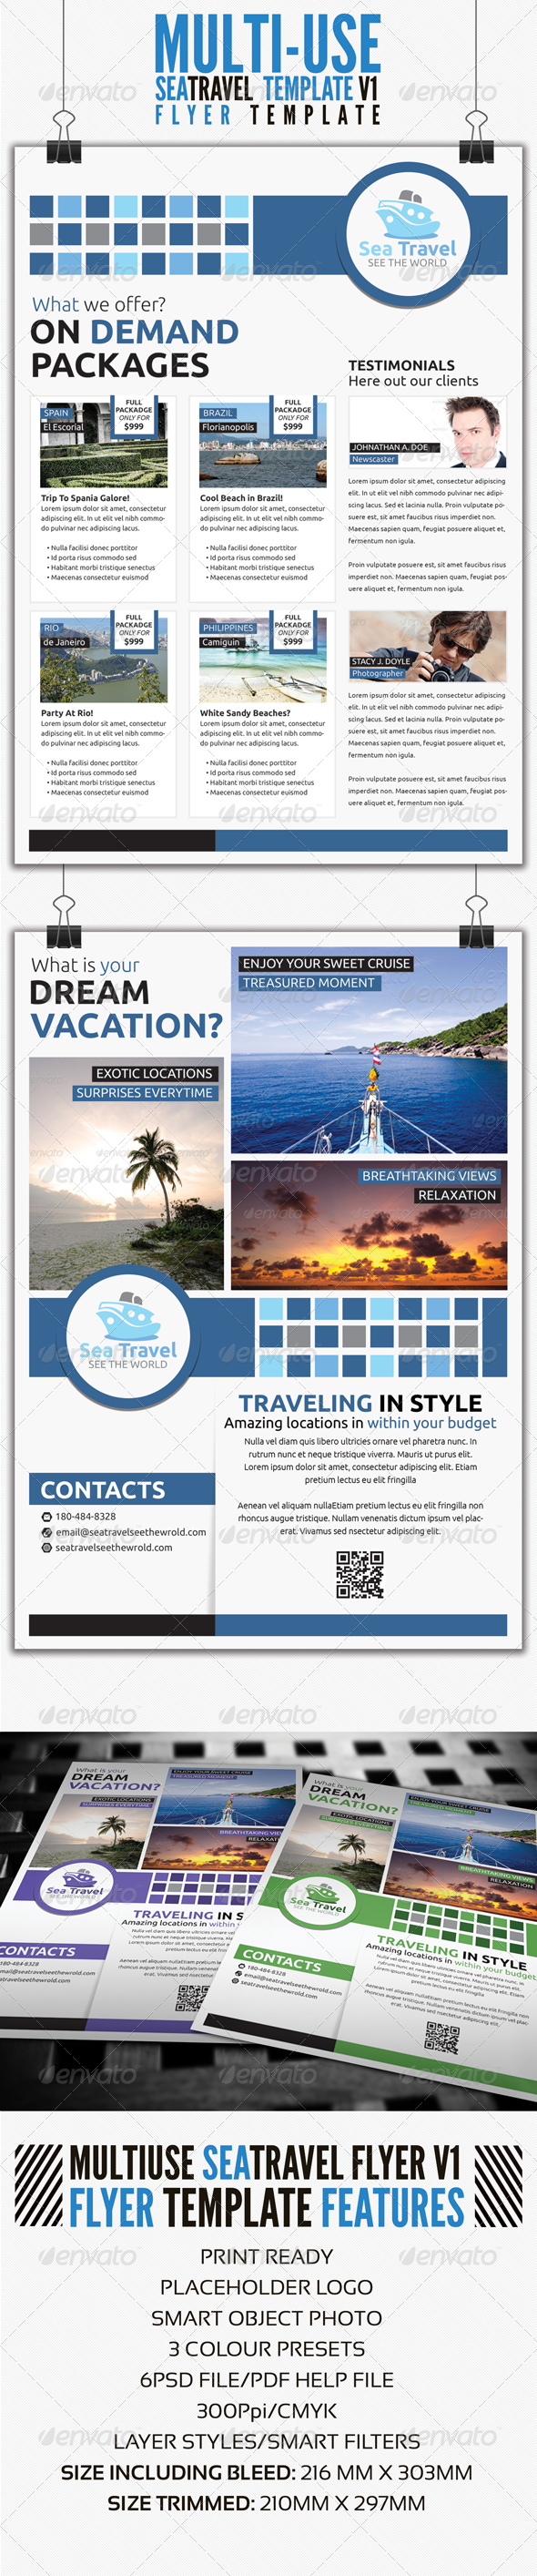 Sea Travel A4 Flyer Template V1 - Commerce Flyers